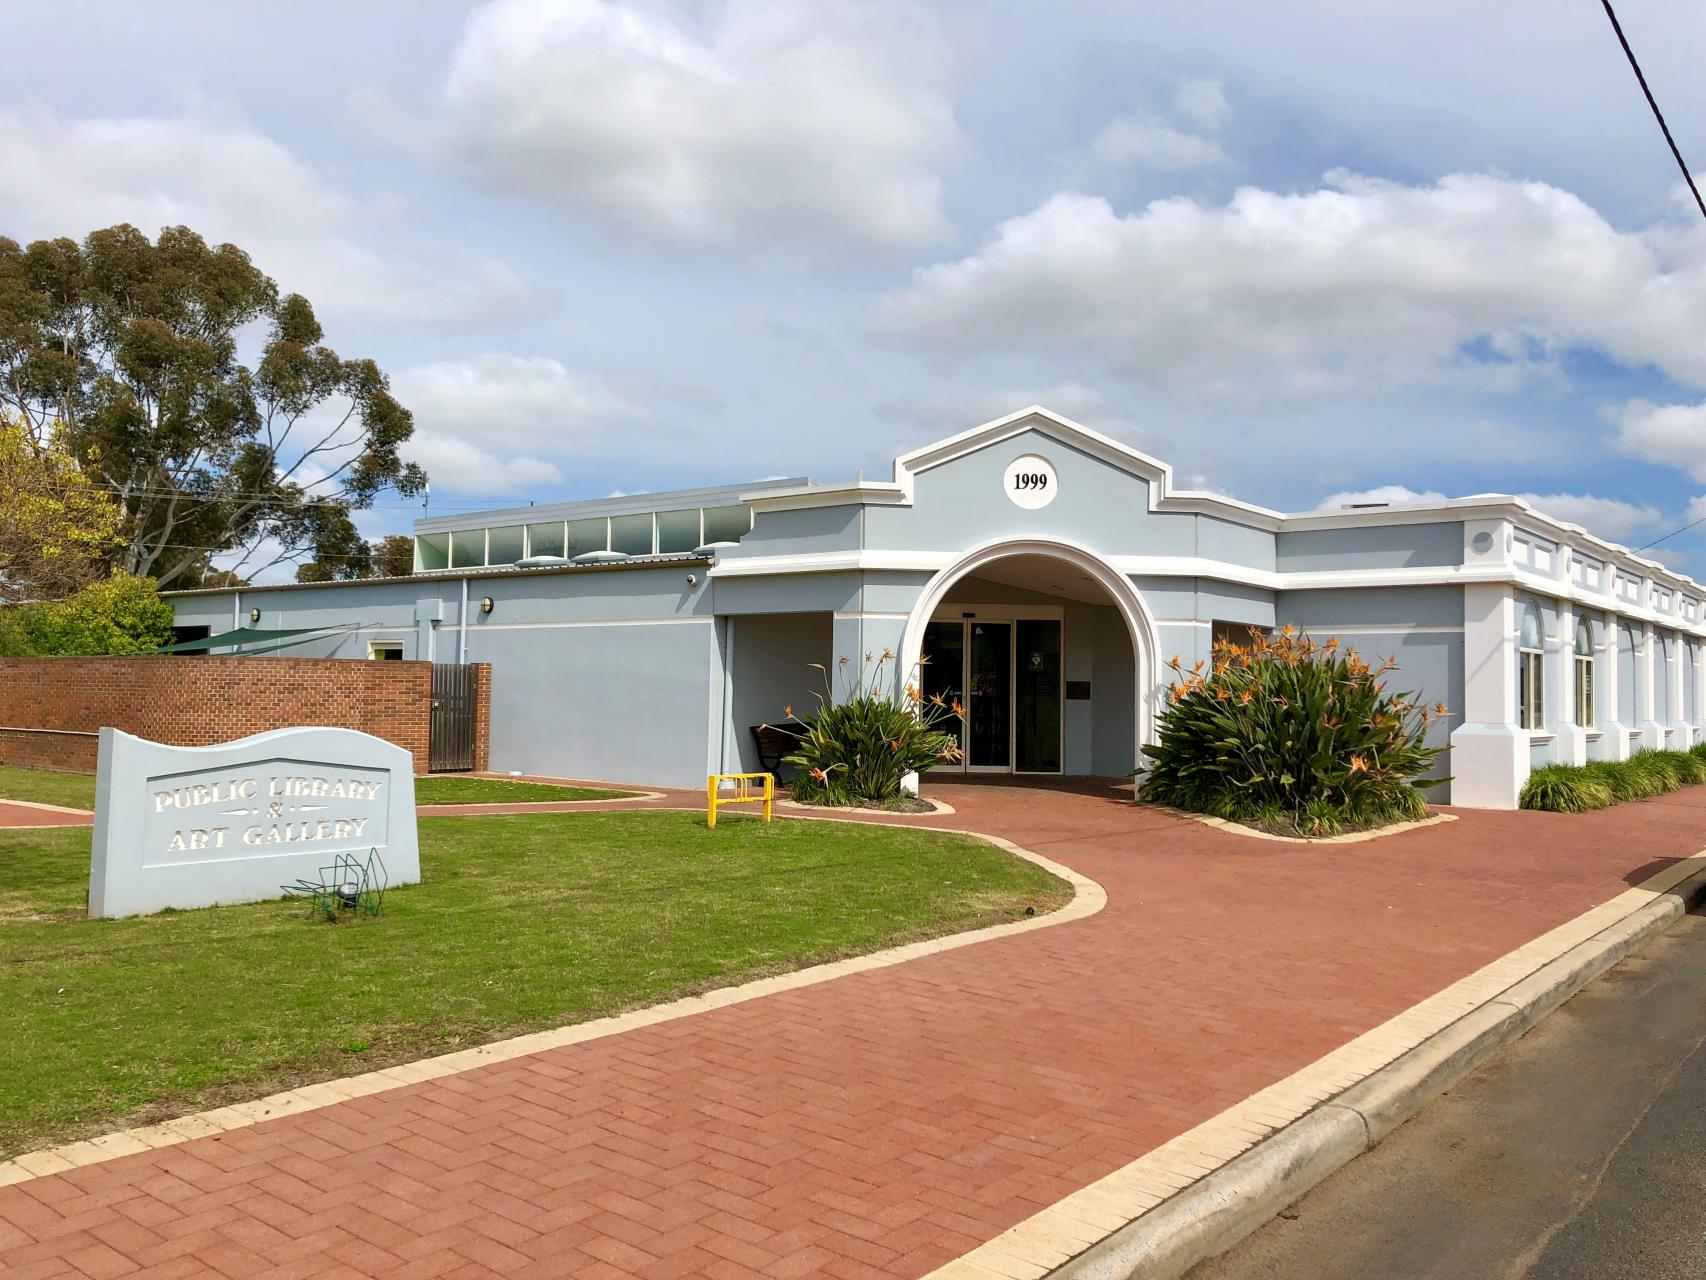 Katanning Public Library Phase 4 - COVID-19 Restrictions